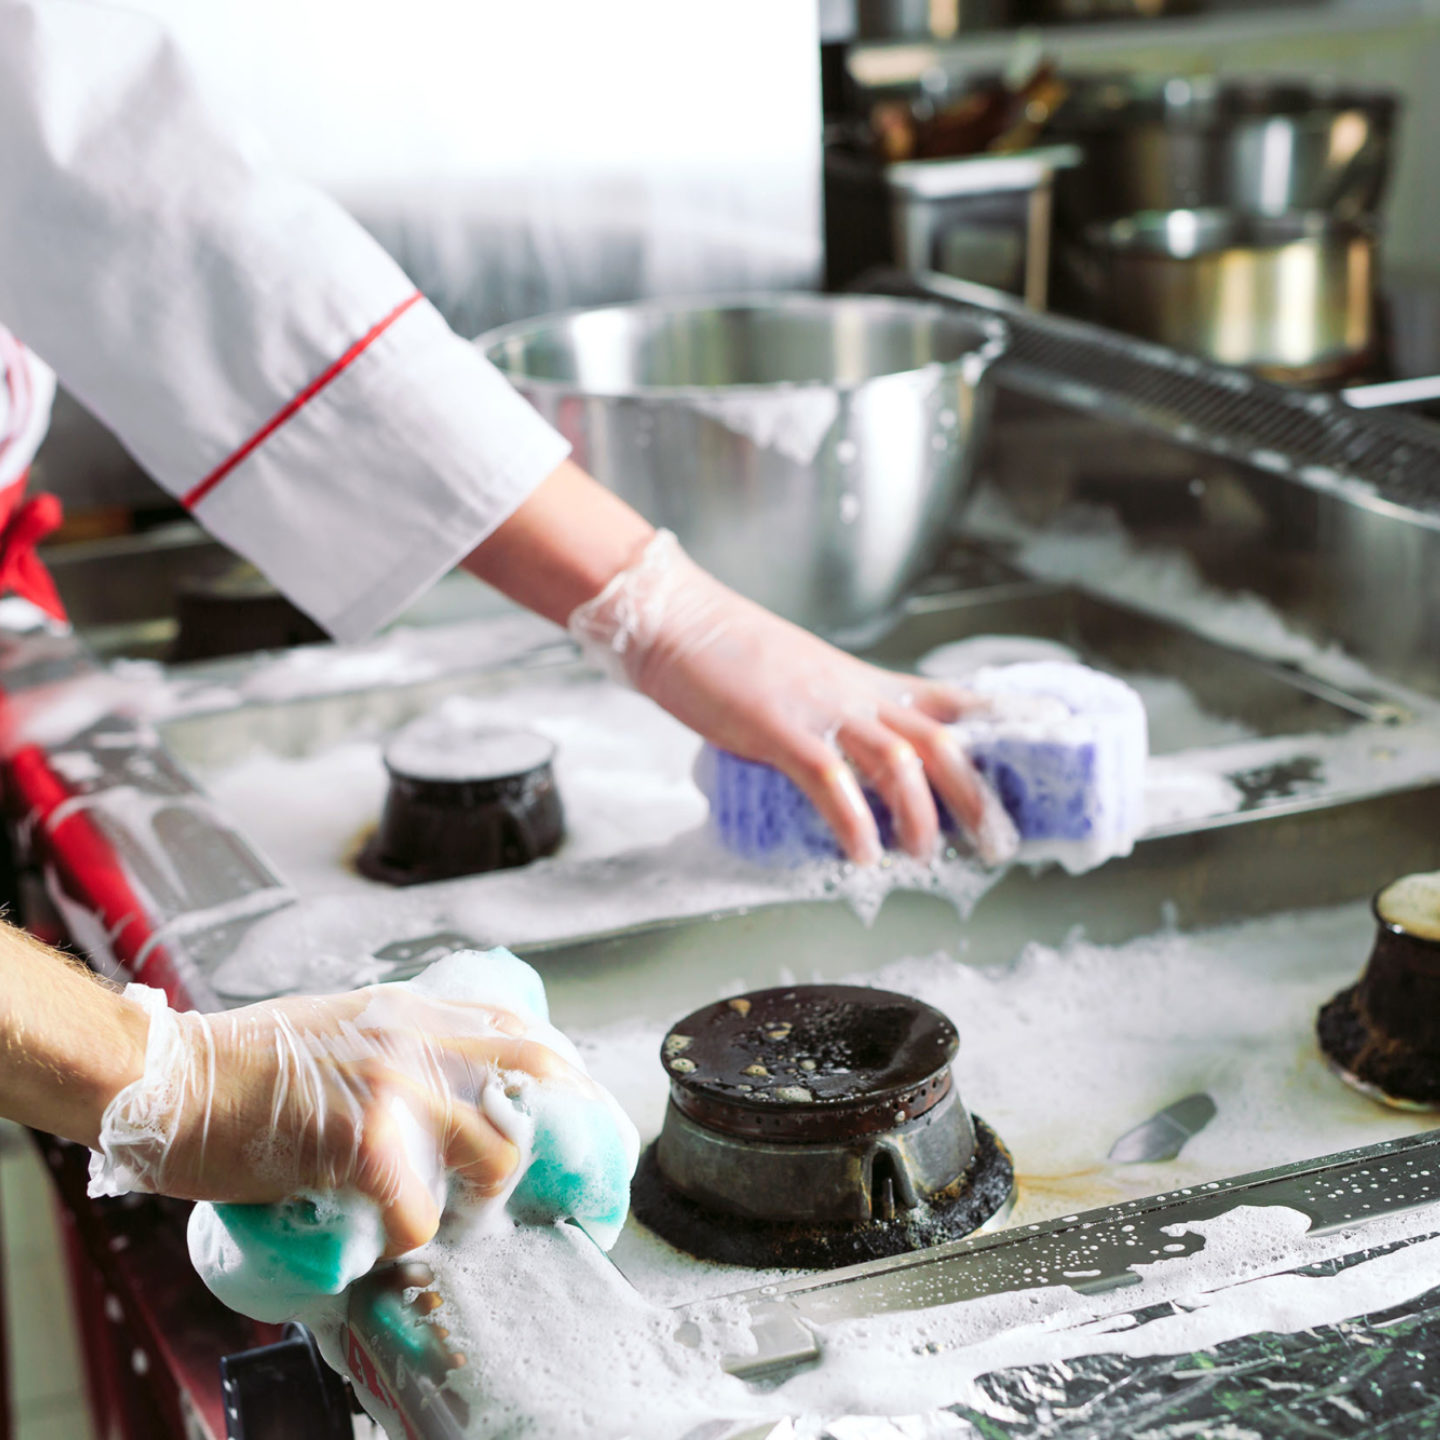 Commercial stove cleaning | NSF International